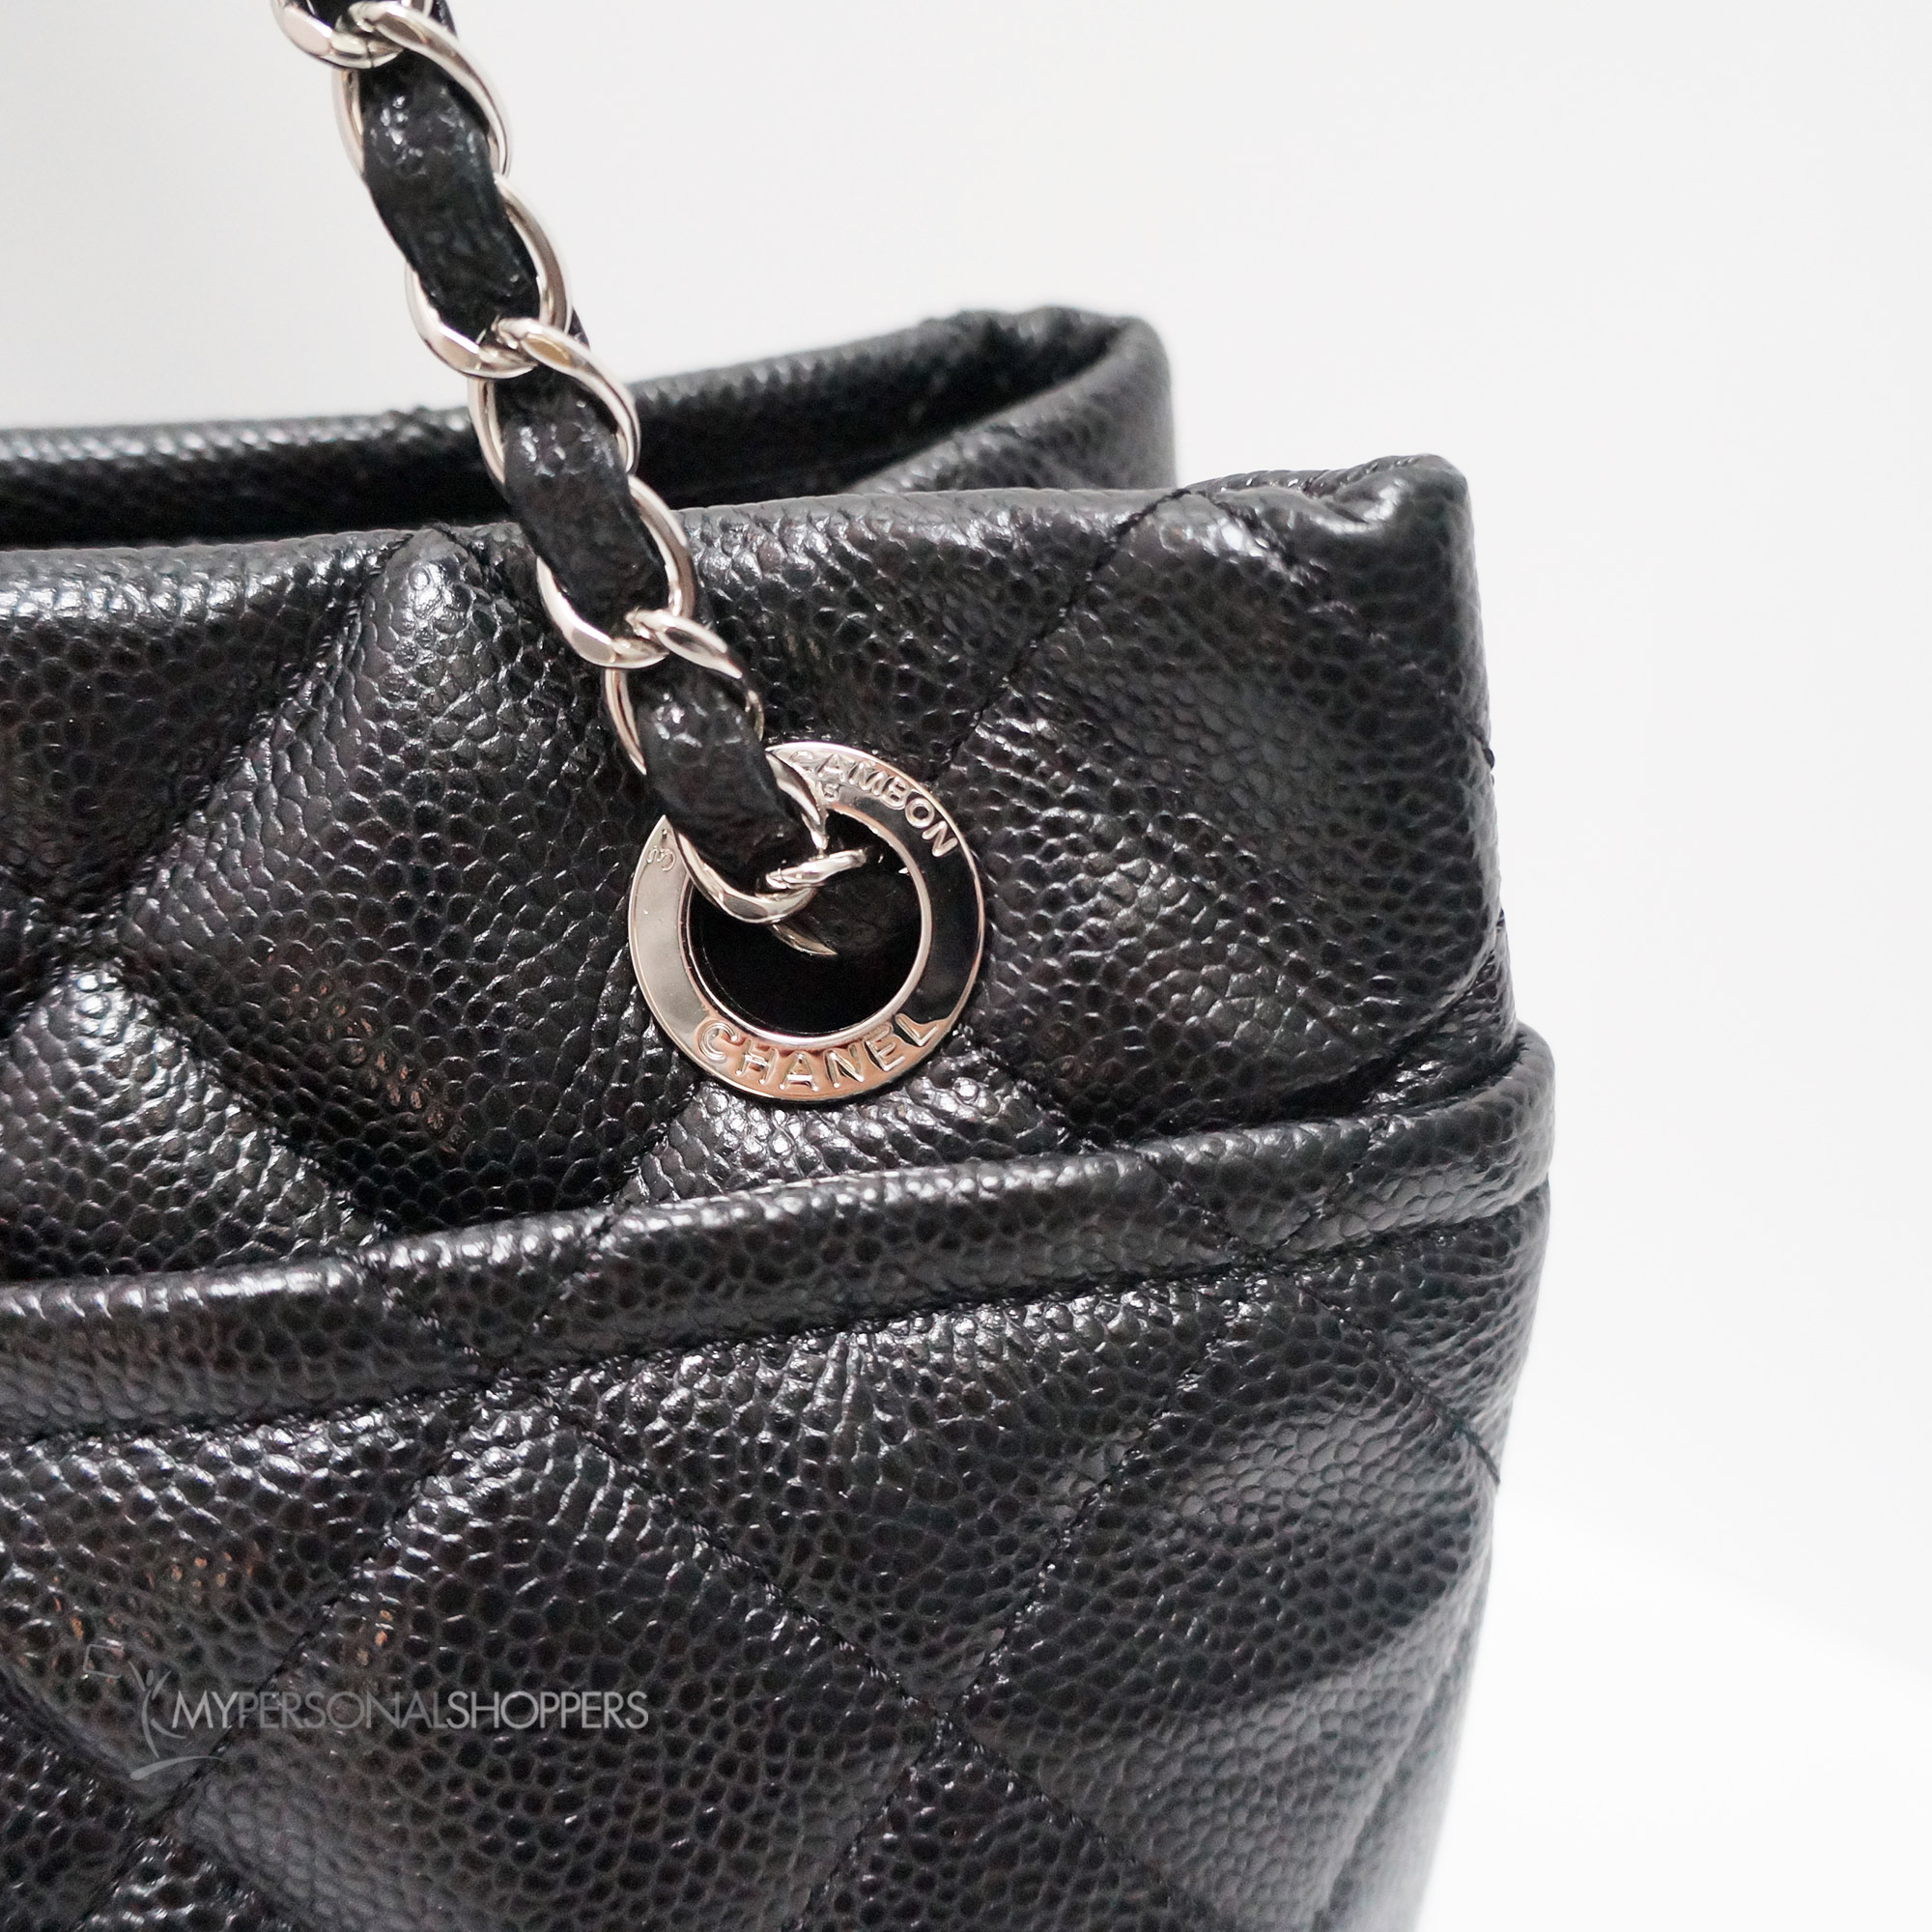 e91d492a08c7c9 Chanel Black Soft Caviar Leather Timless Large Shopping Tote Bag ...